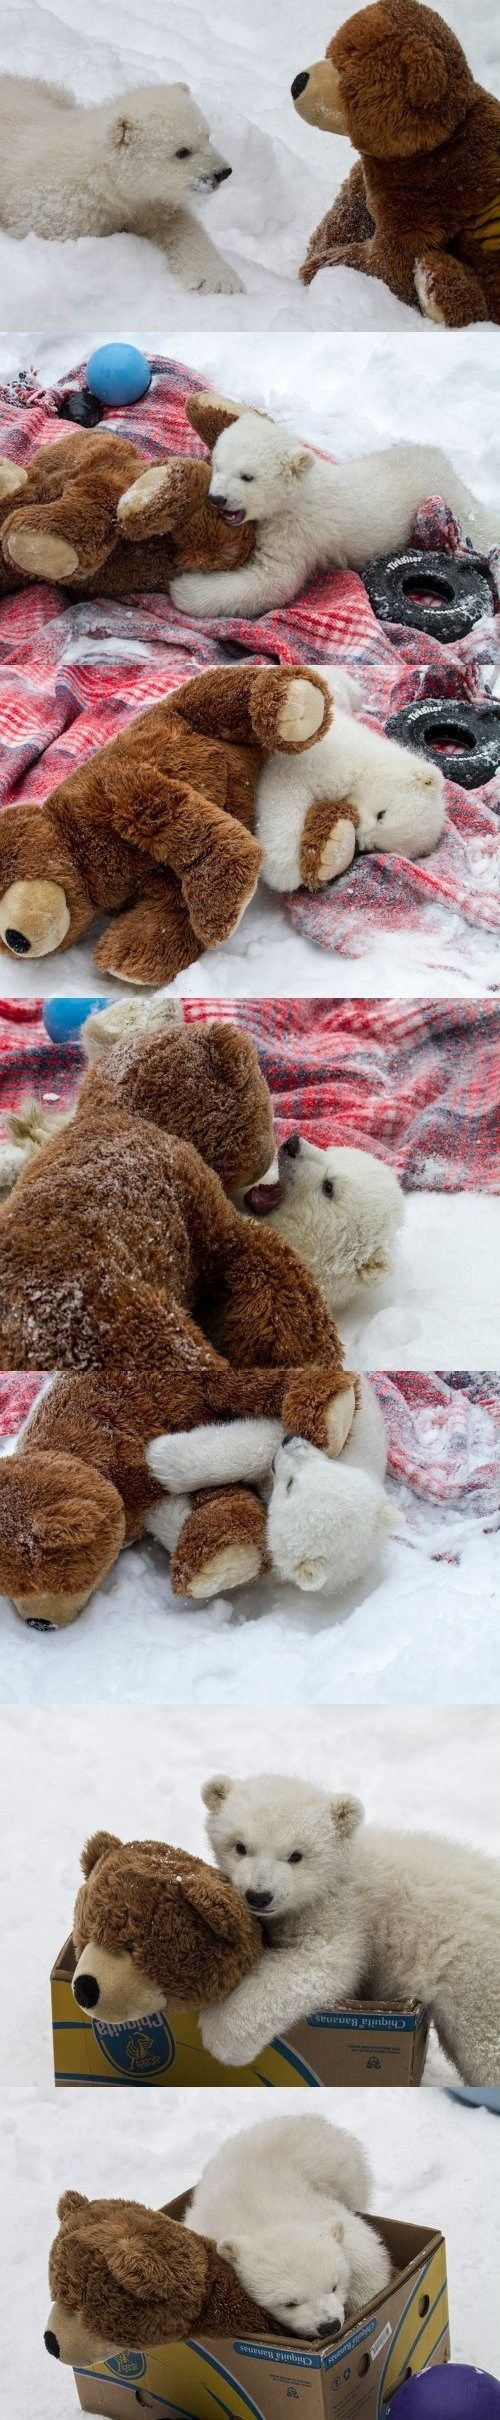 baby polar bear meets a friend. I just cant handle this cuteness...